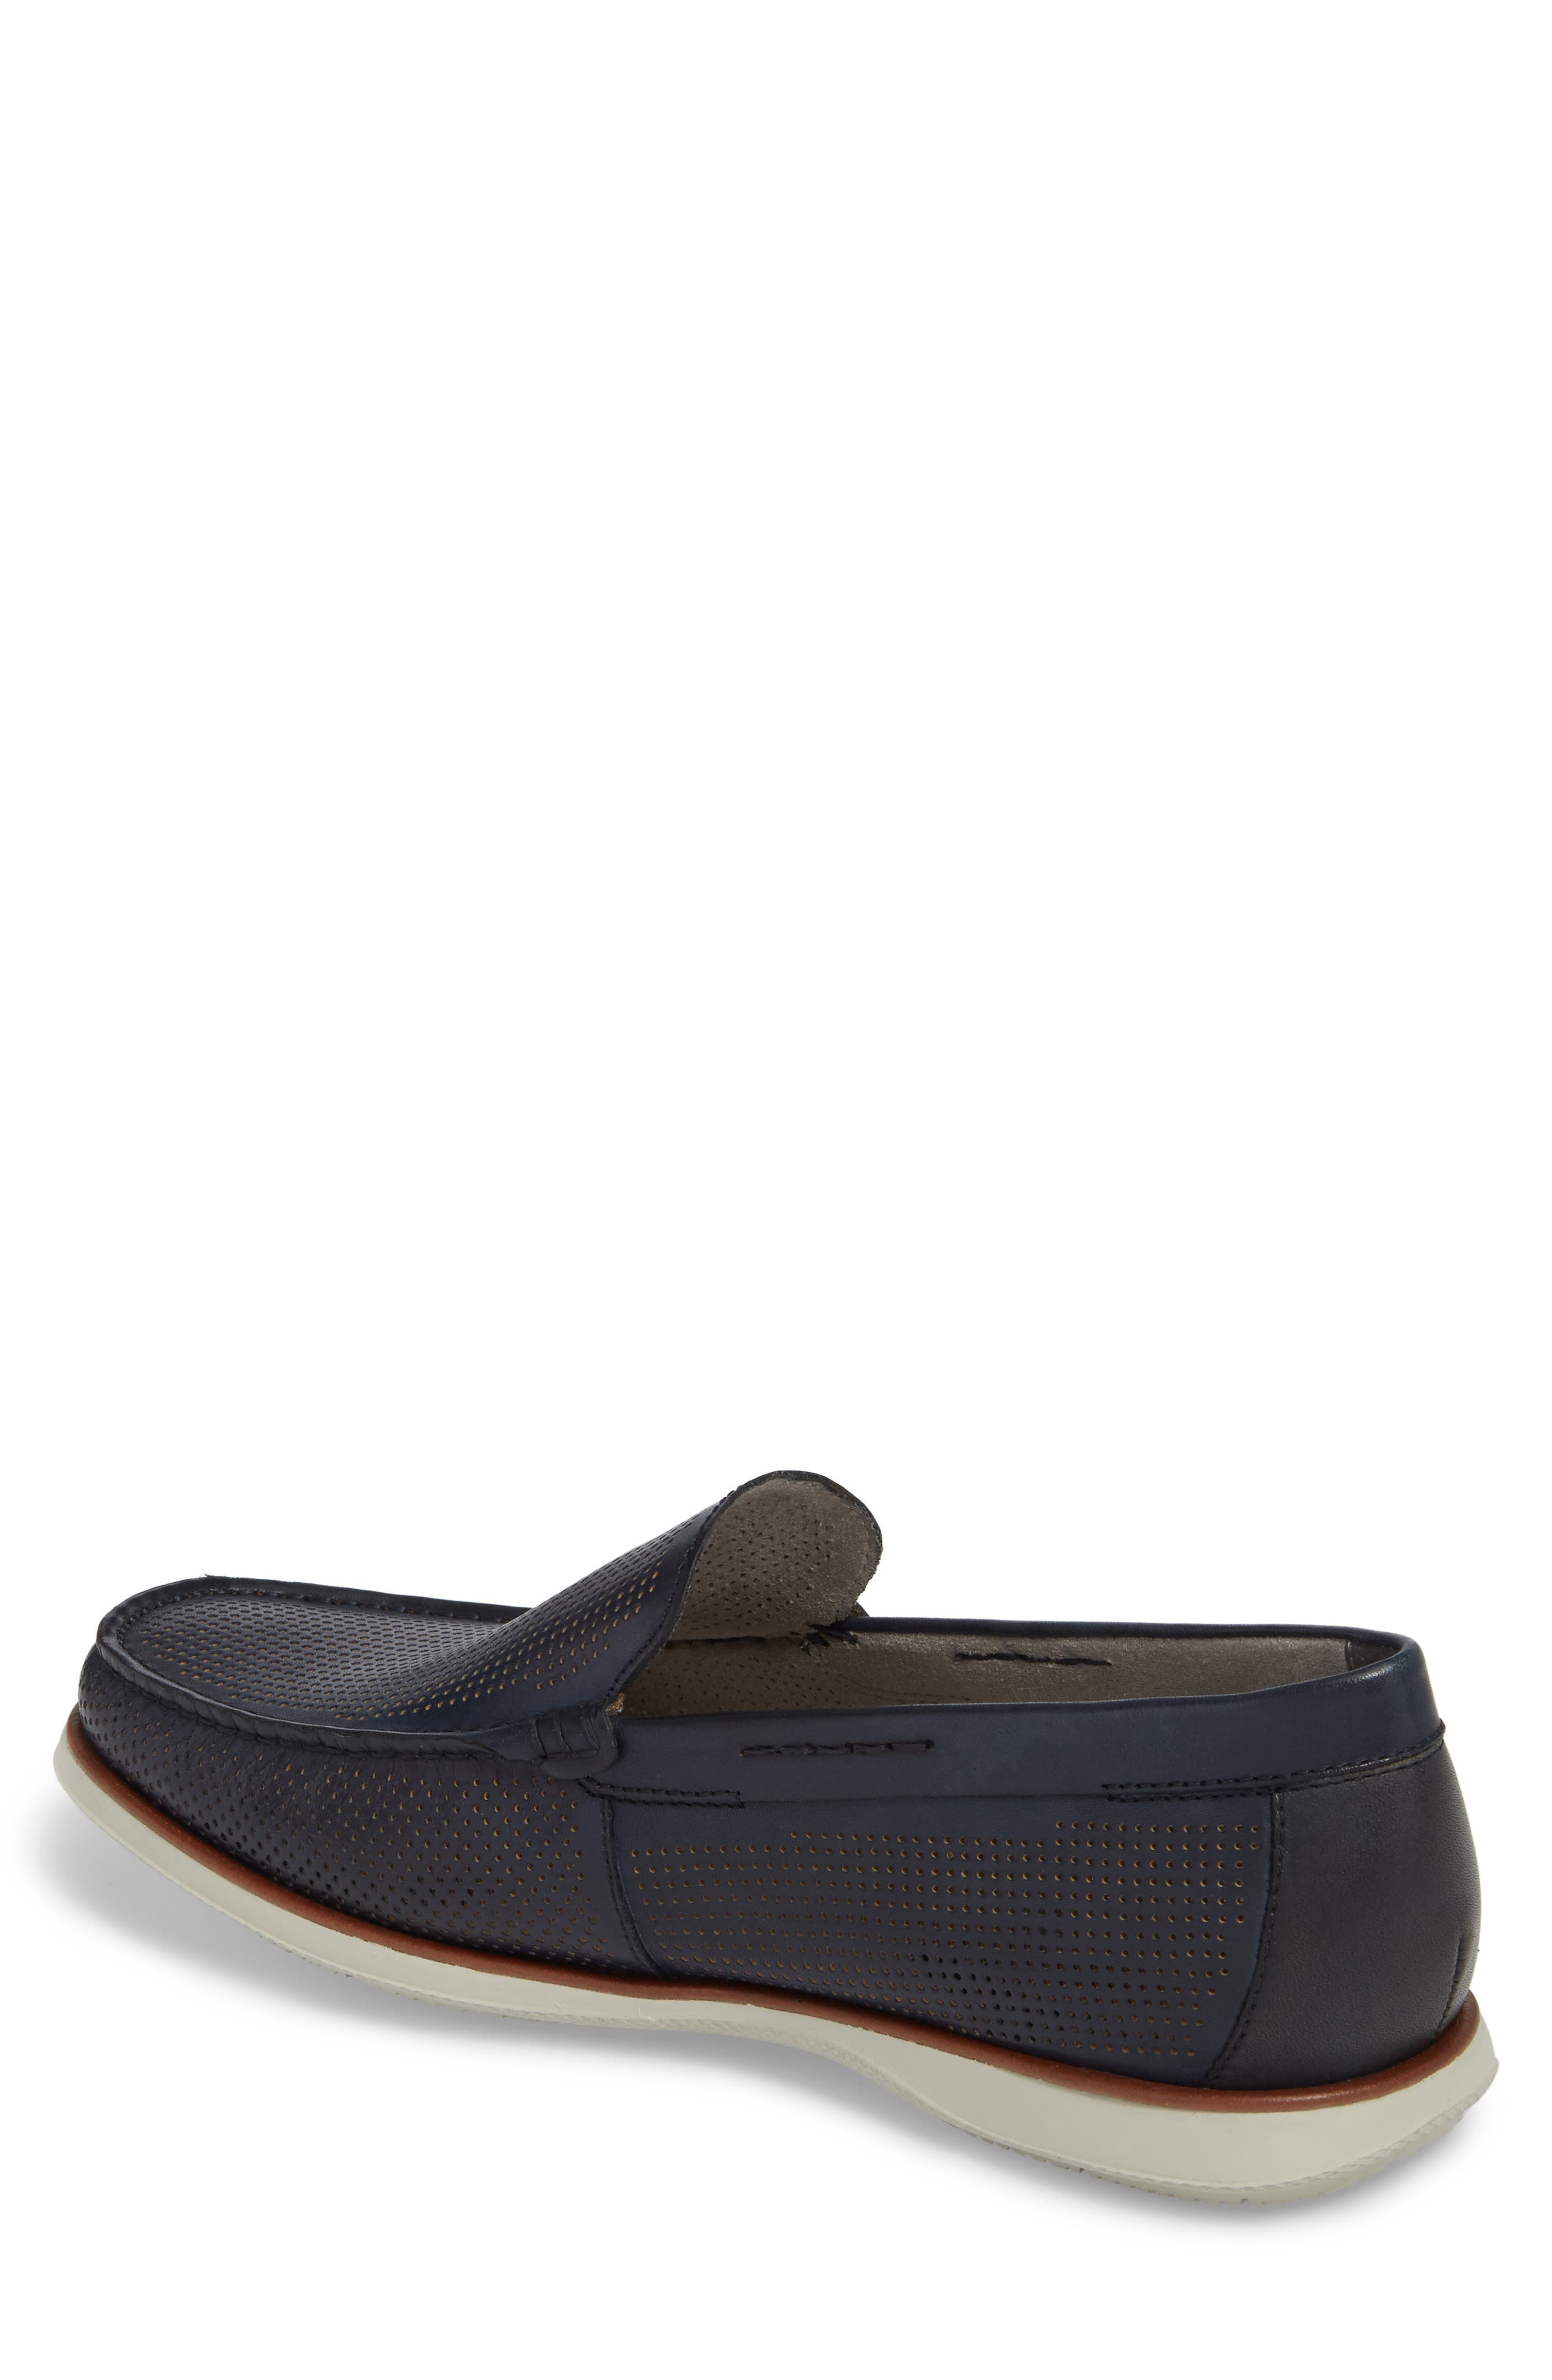 Cyrus Venetian Loafer,                             Alternate thumbnail 6, color,